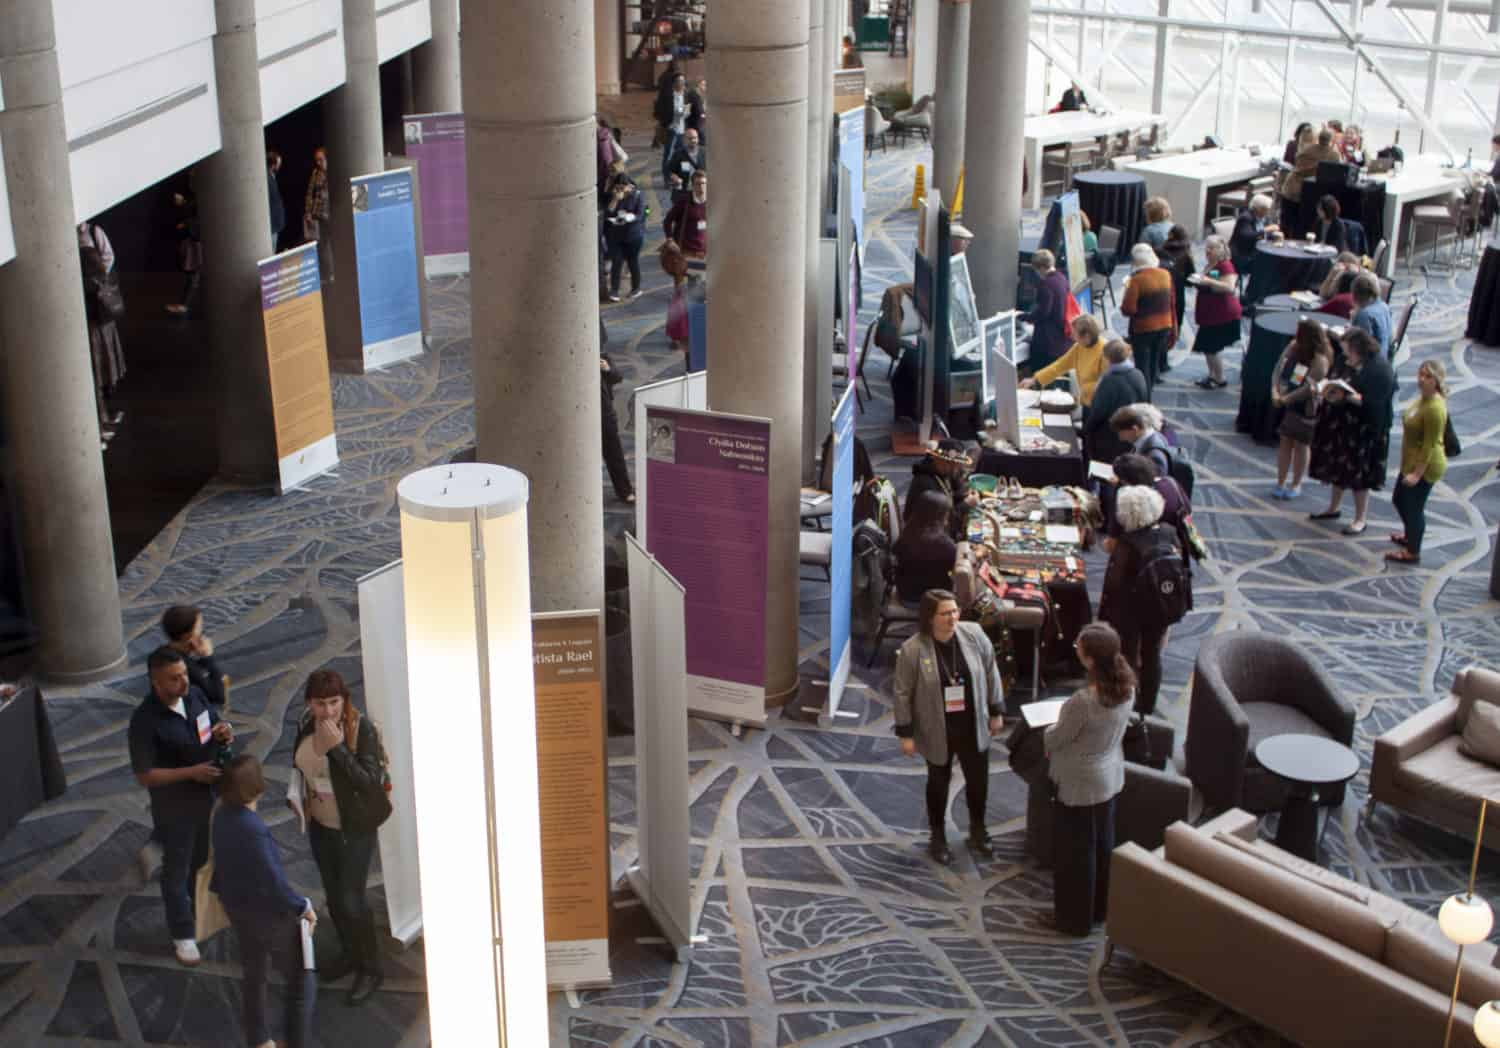 View from above of many people gathered in a hotel lobby around posters and exhibit tables